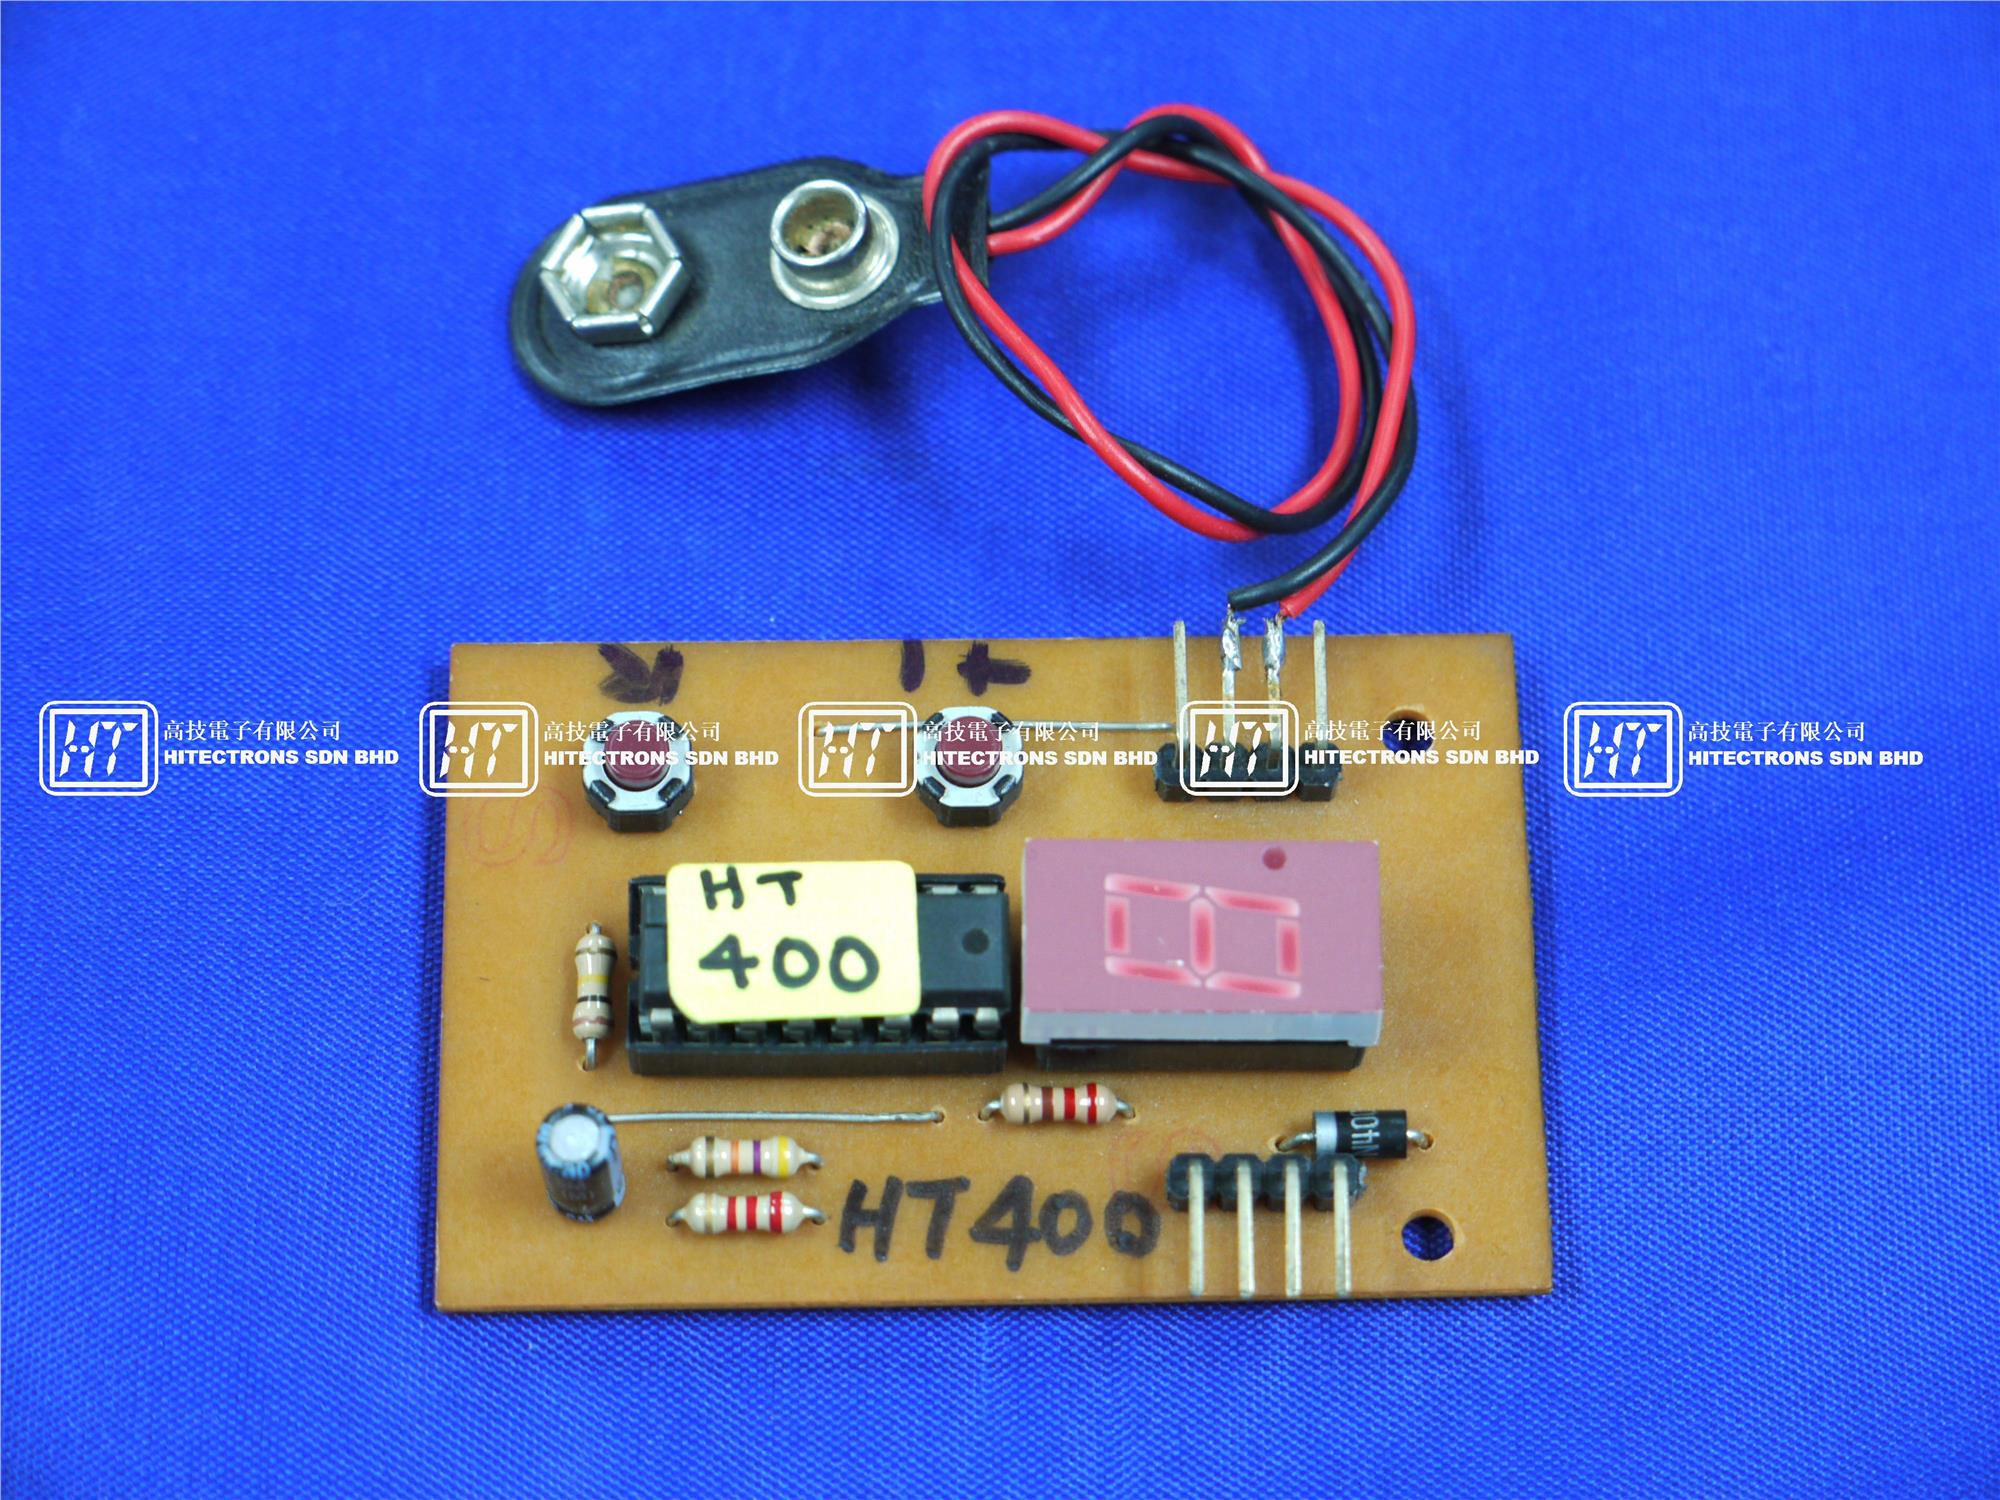 Ht400 Single Digit Up Counter Elect End 9 8 2019 314 Pm Hobby Electronic Circuits Electronics Diy Kit Set